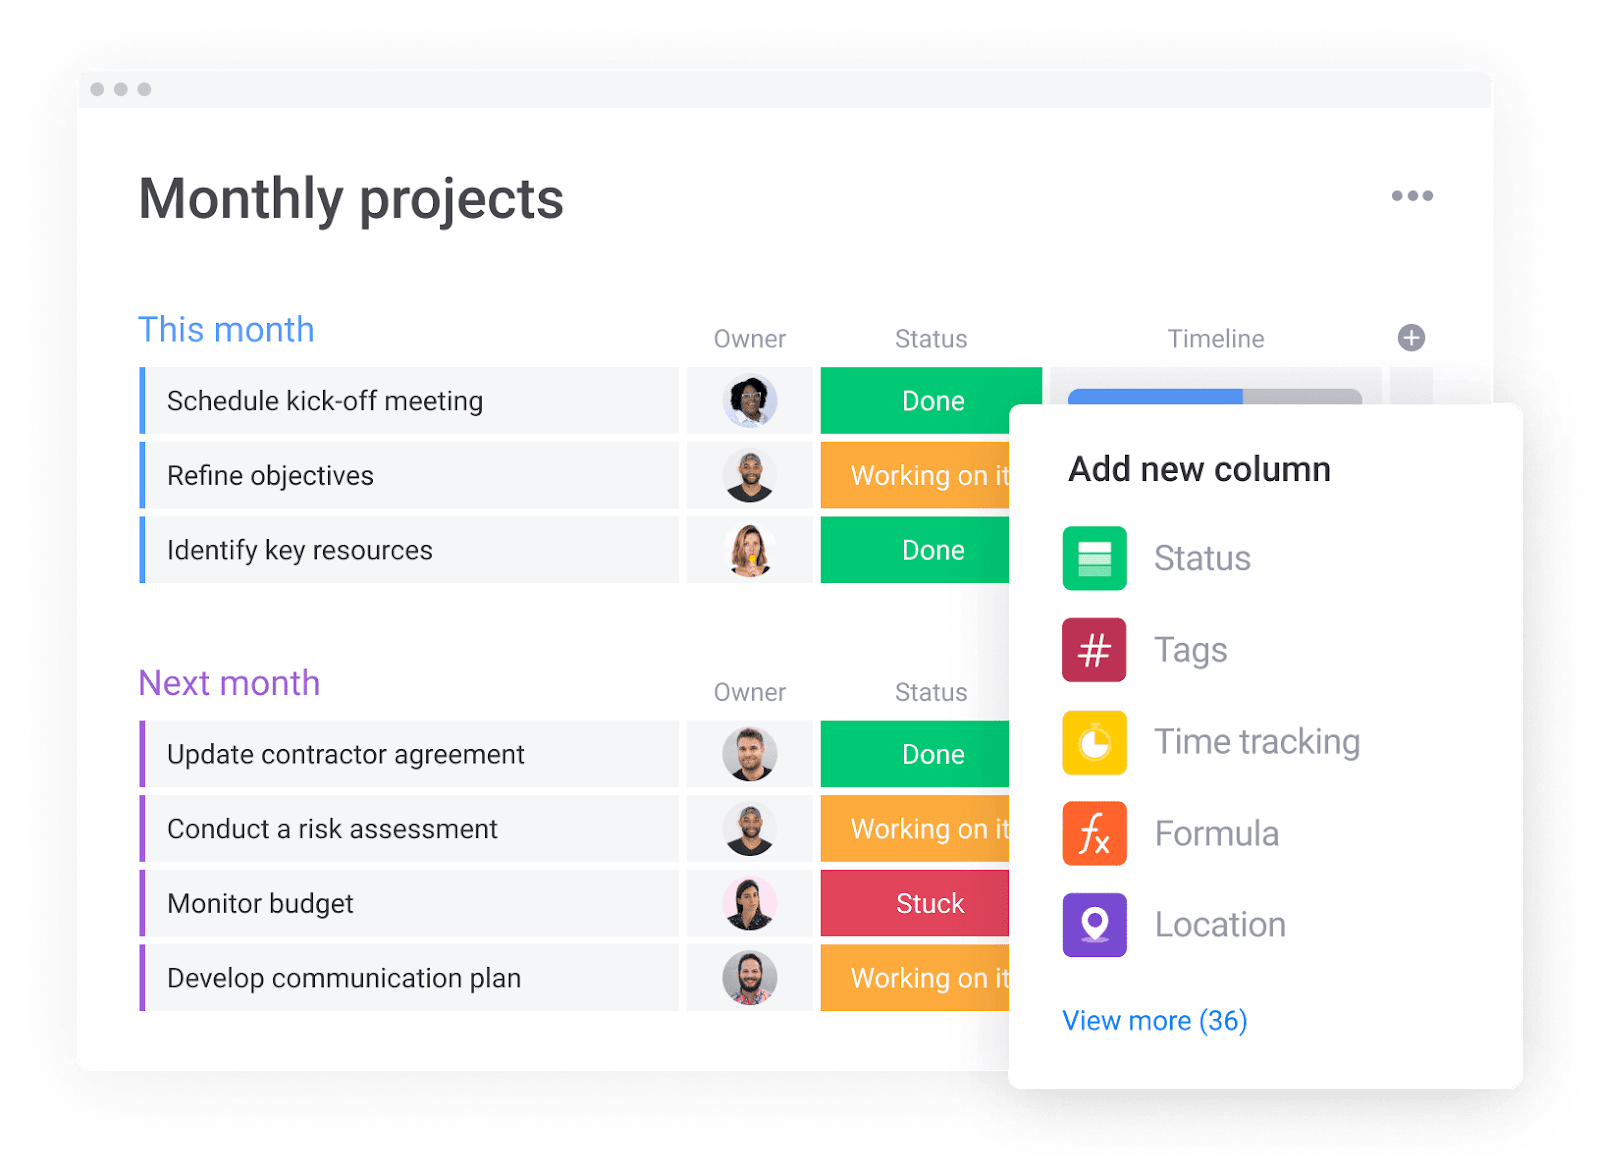 monday.com's project management platform allows users to view their monthly projects in one place